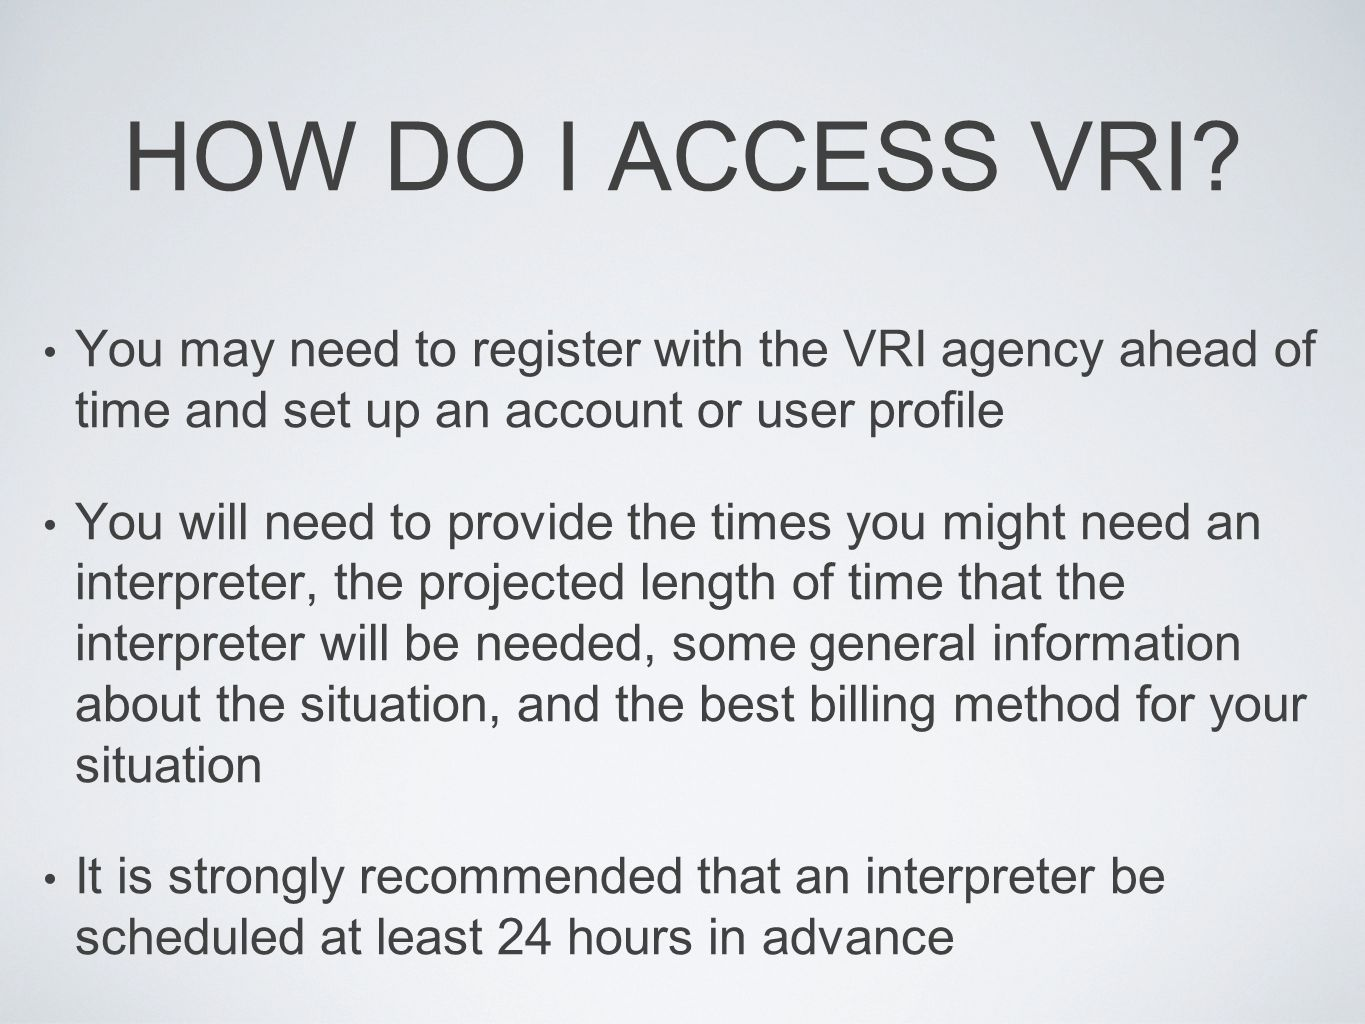 HOW DO I ACCESS VRI You may need to register with the VRI agency ahead of time and set up an account or user profile.